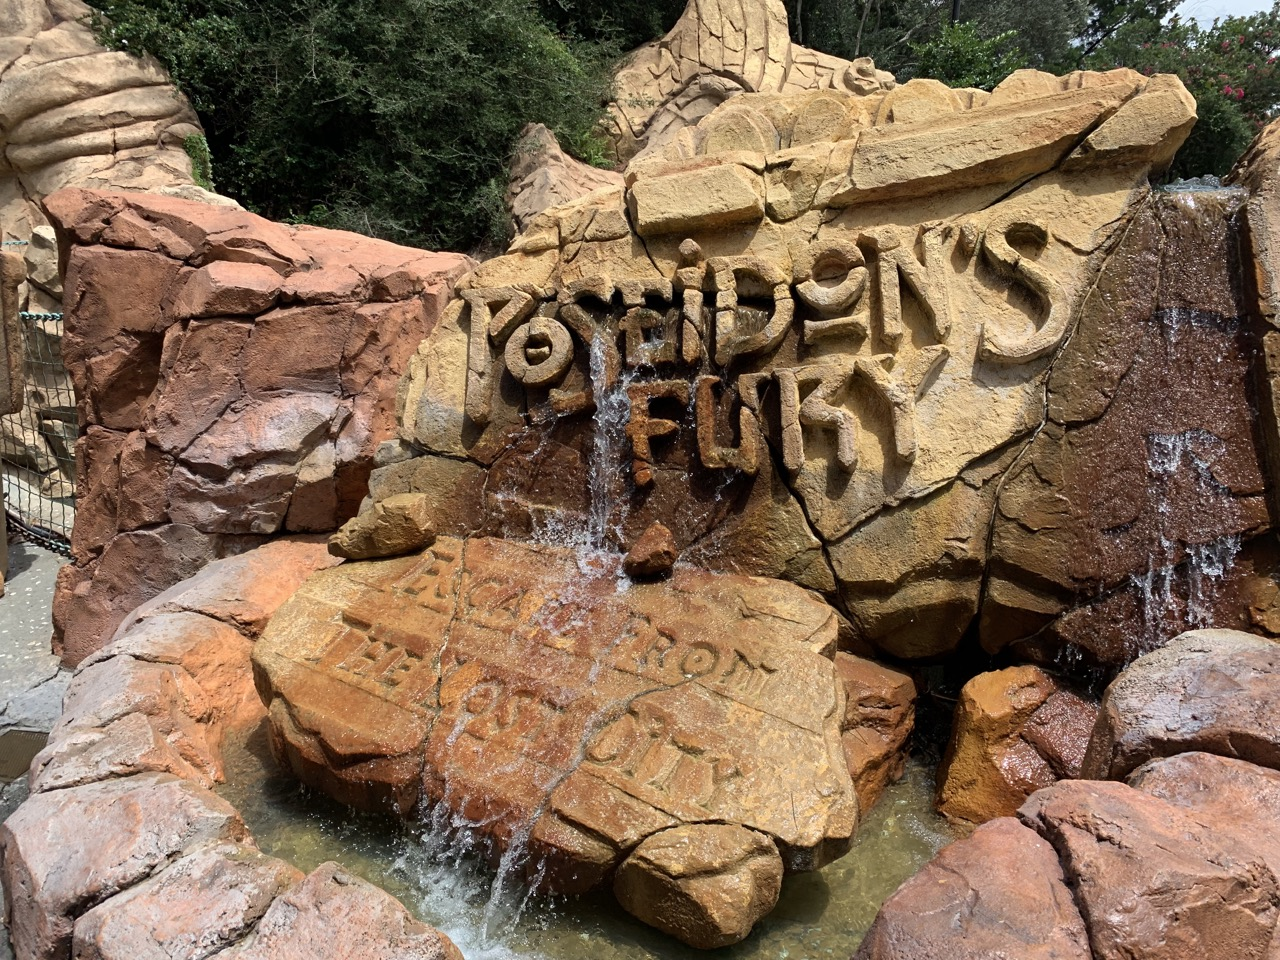 universal orlando summer 2019 trip report part 5 poseidon fury.jpeg